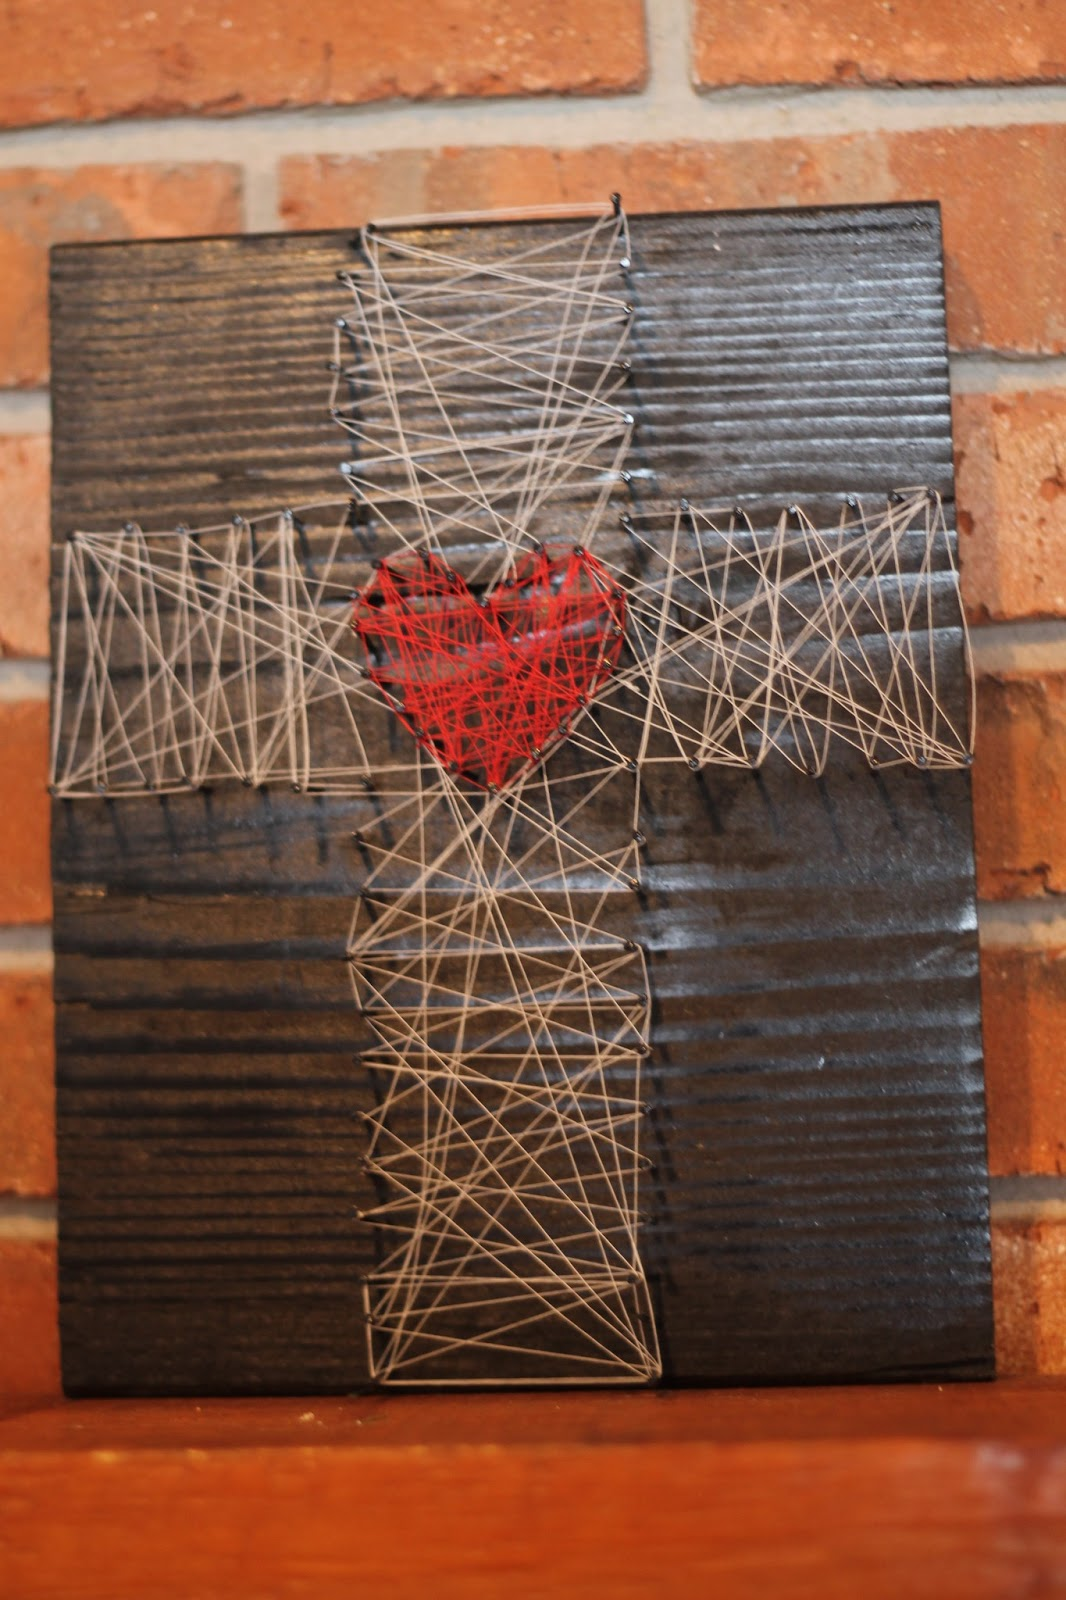 Lenten Nail and String Art - Do Small Things with Great Love